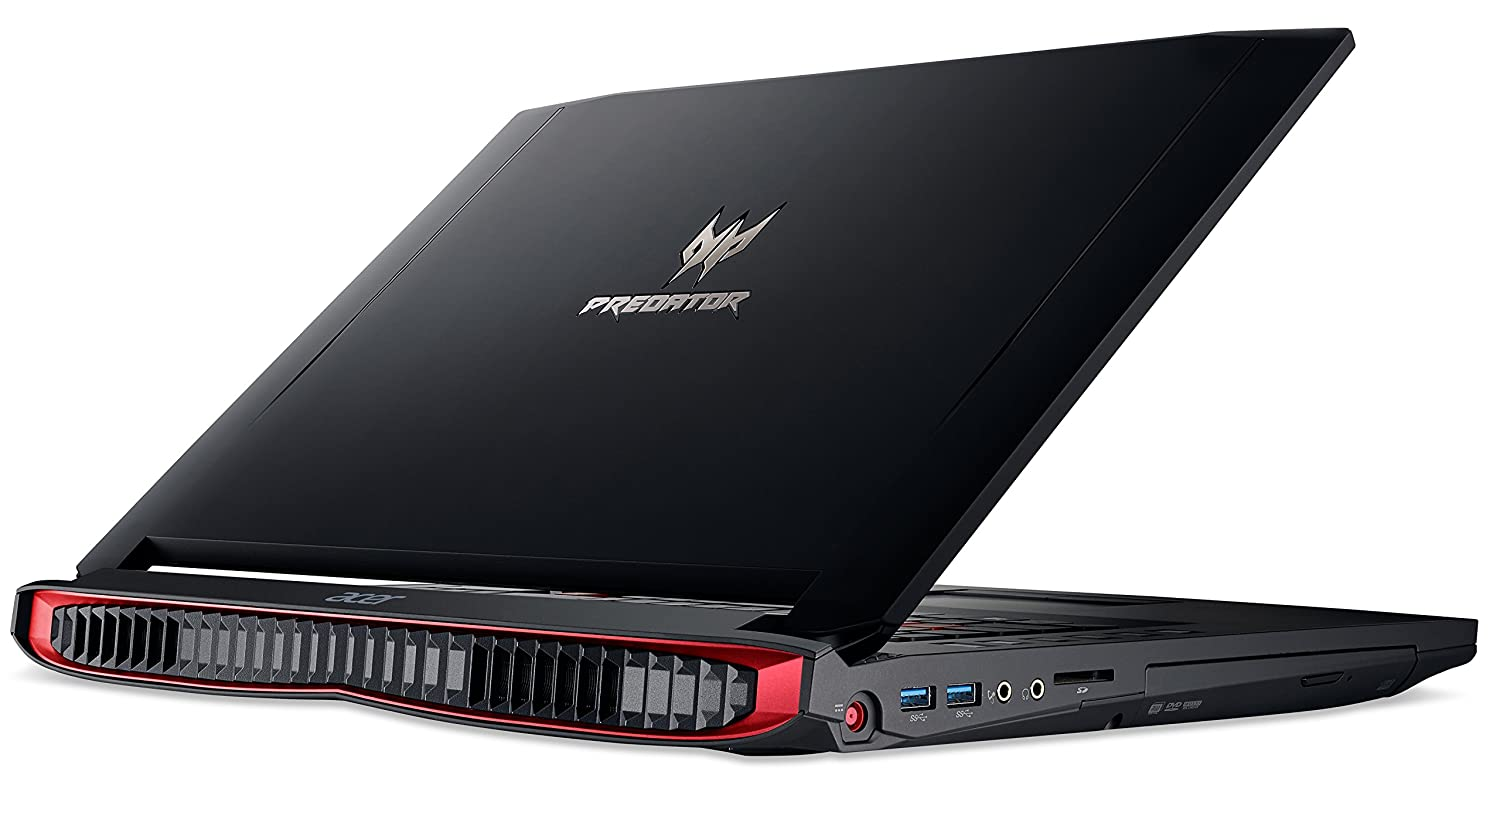 Acer Predator 17 G9-792-74TT 17 Zoll Gaming-Notebook